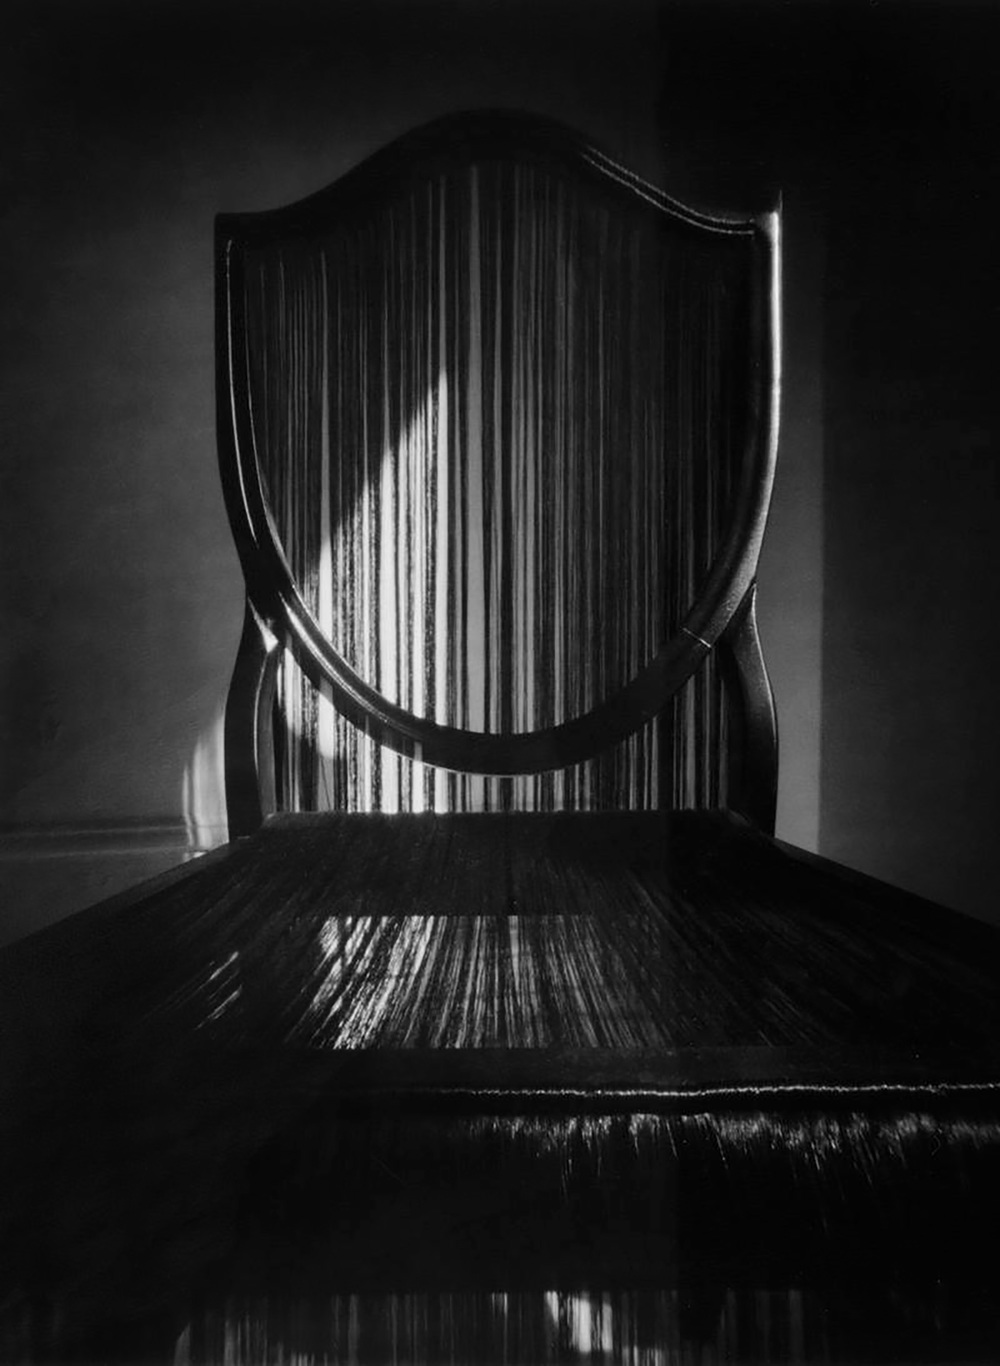 Hair Chair, 2011